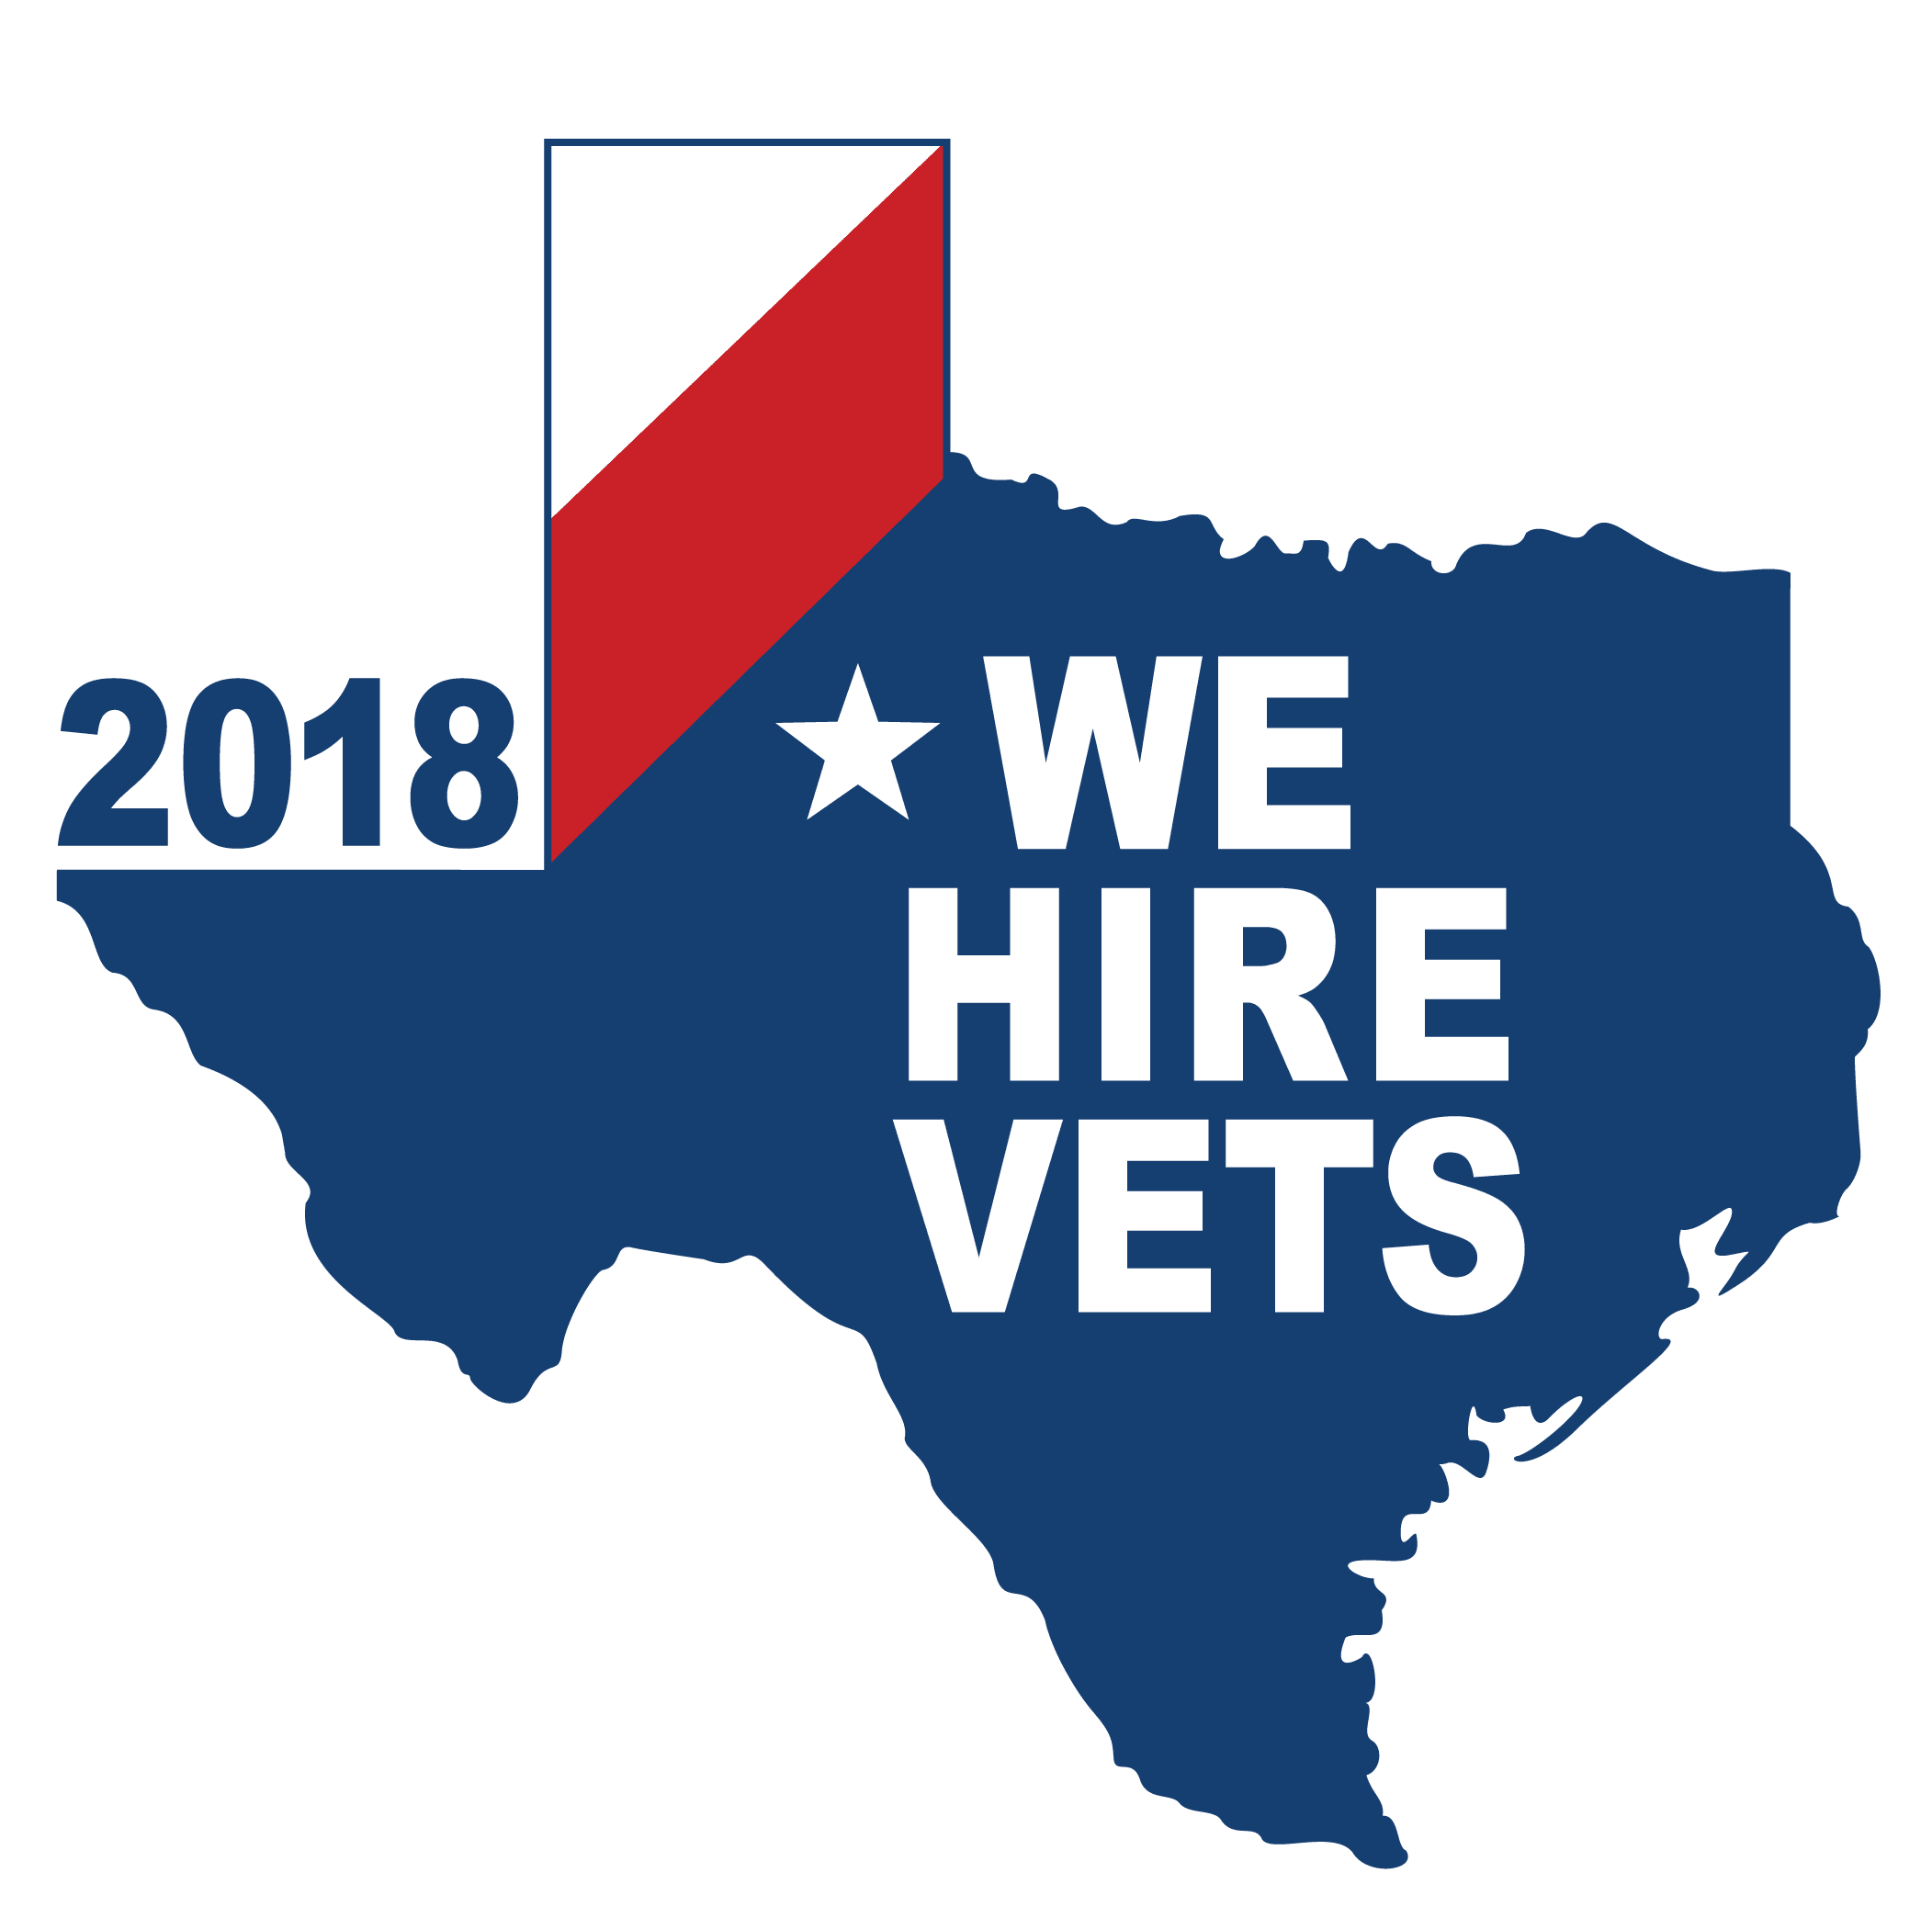 We-Hire-Vets-White-Background 2018